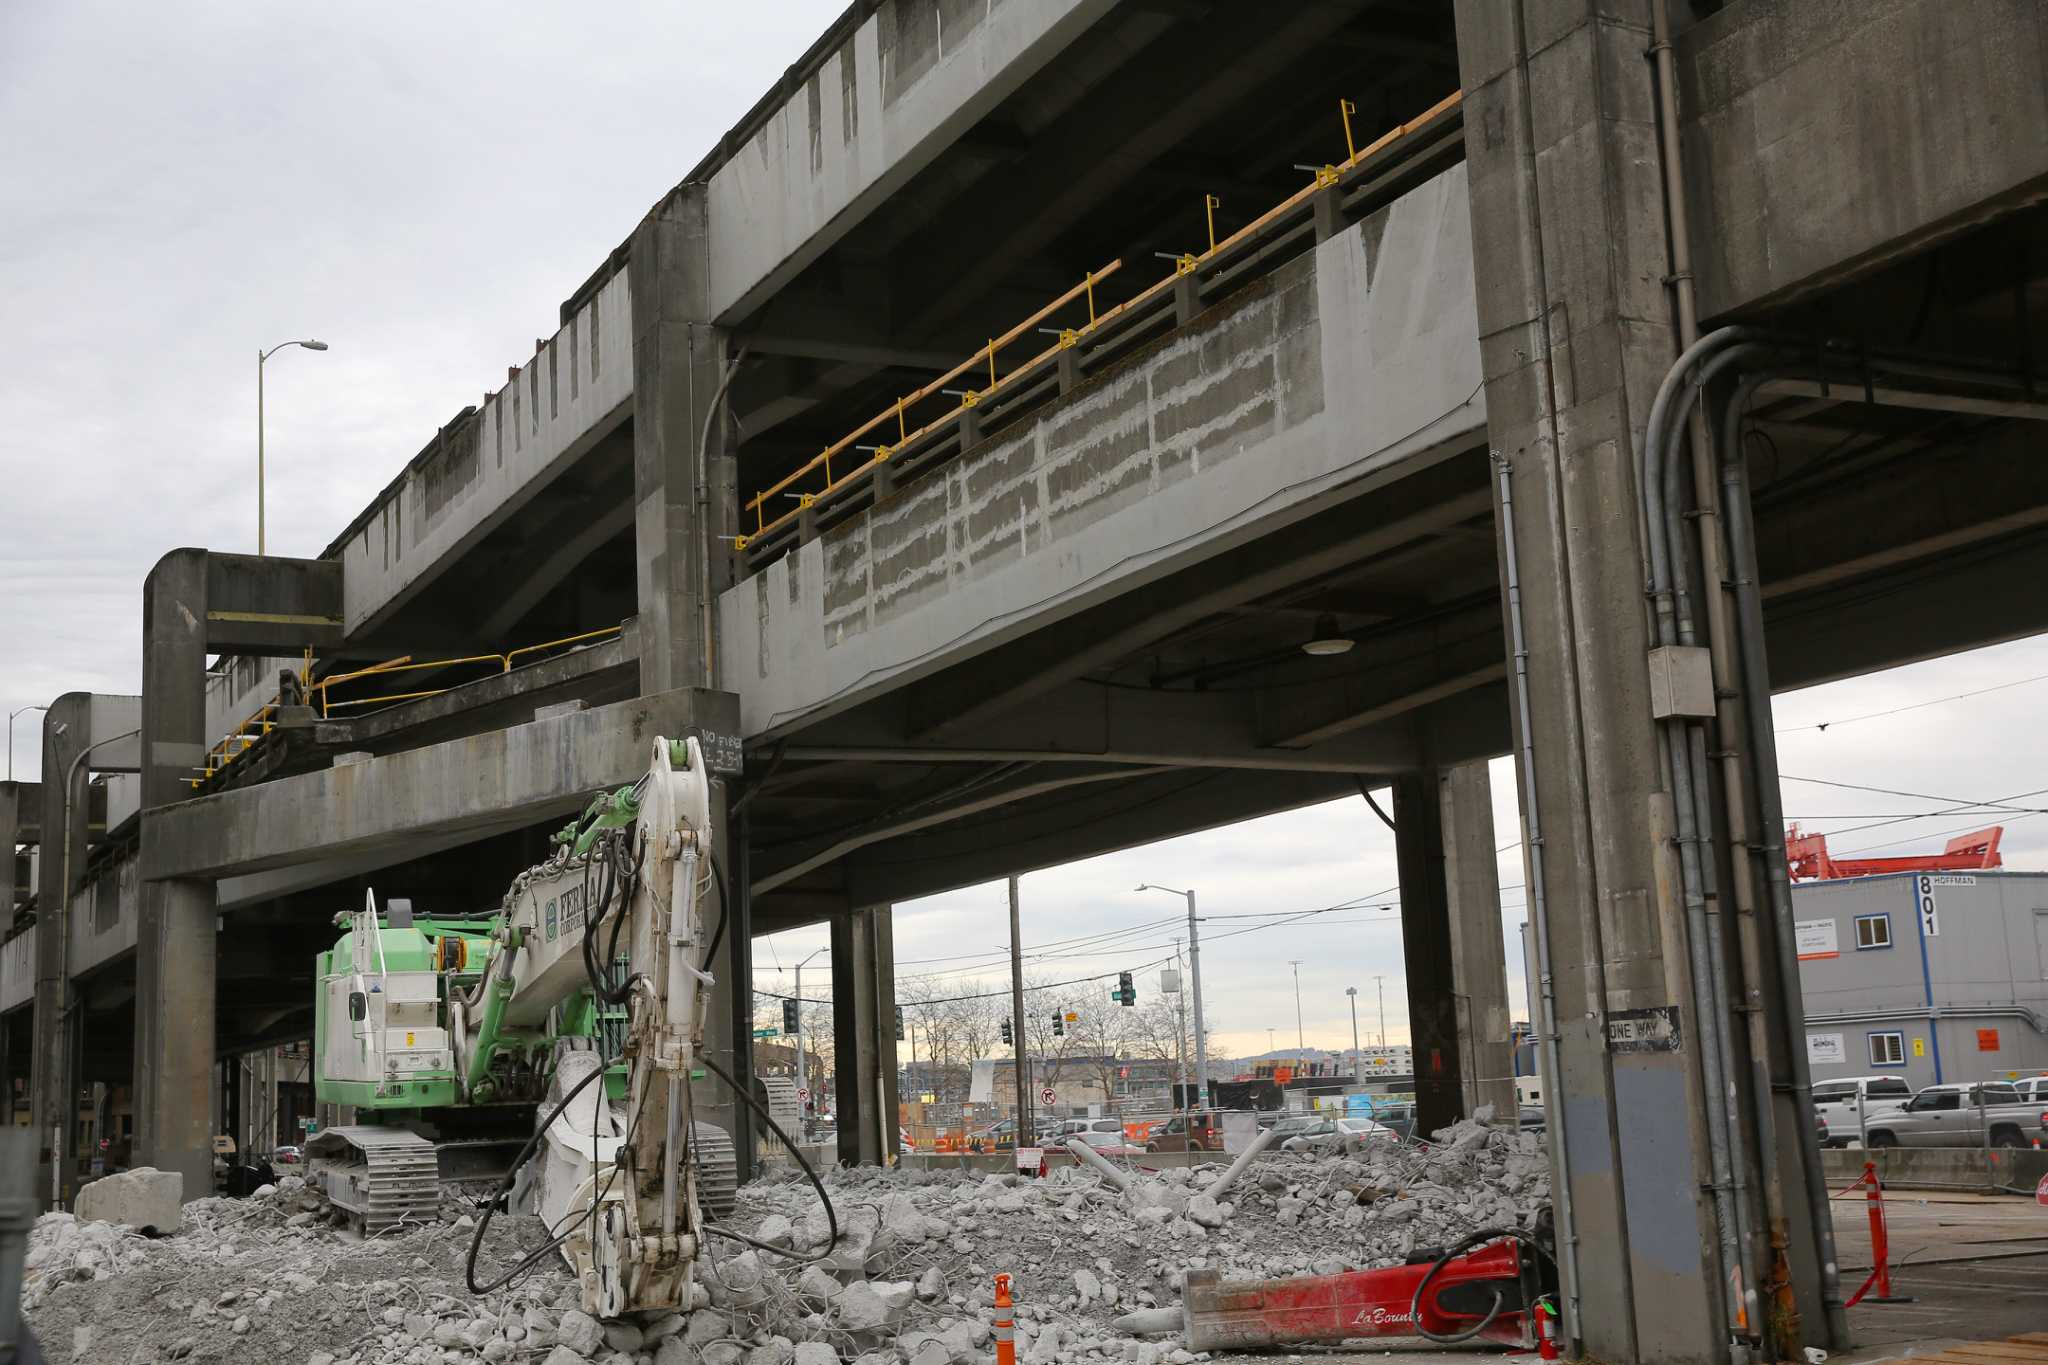 Time-lapse video shows first weeks of Alaskan Way Viaduct demolition